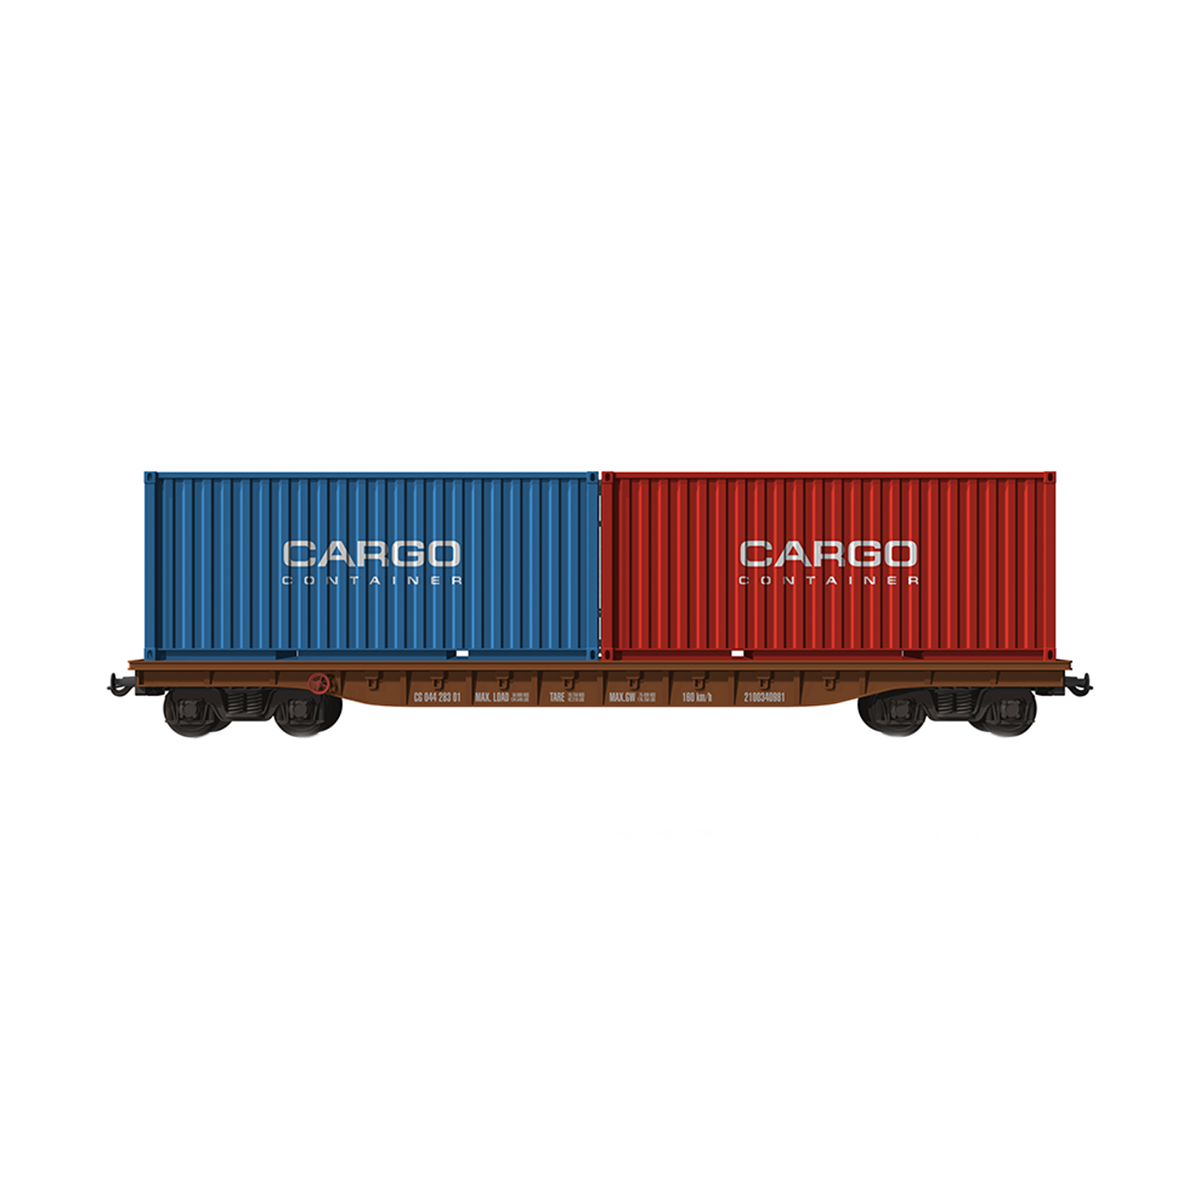 Rail Cars and other containers